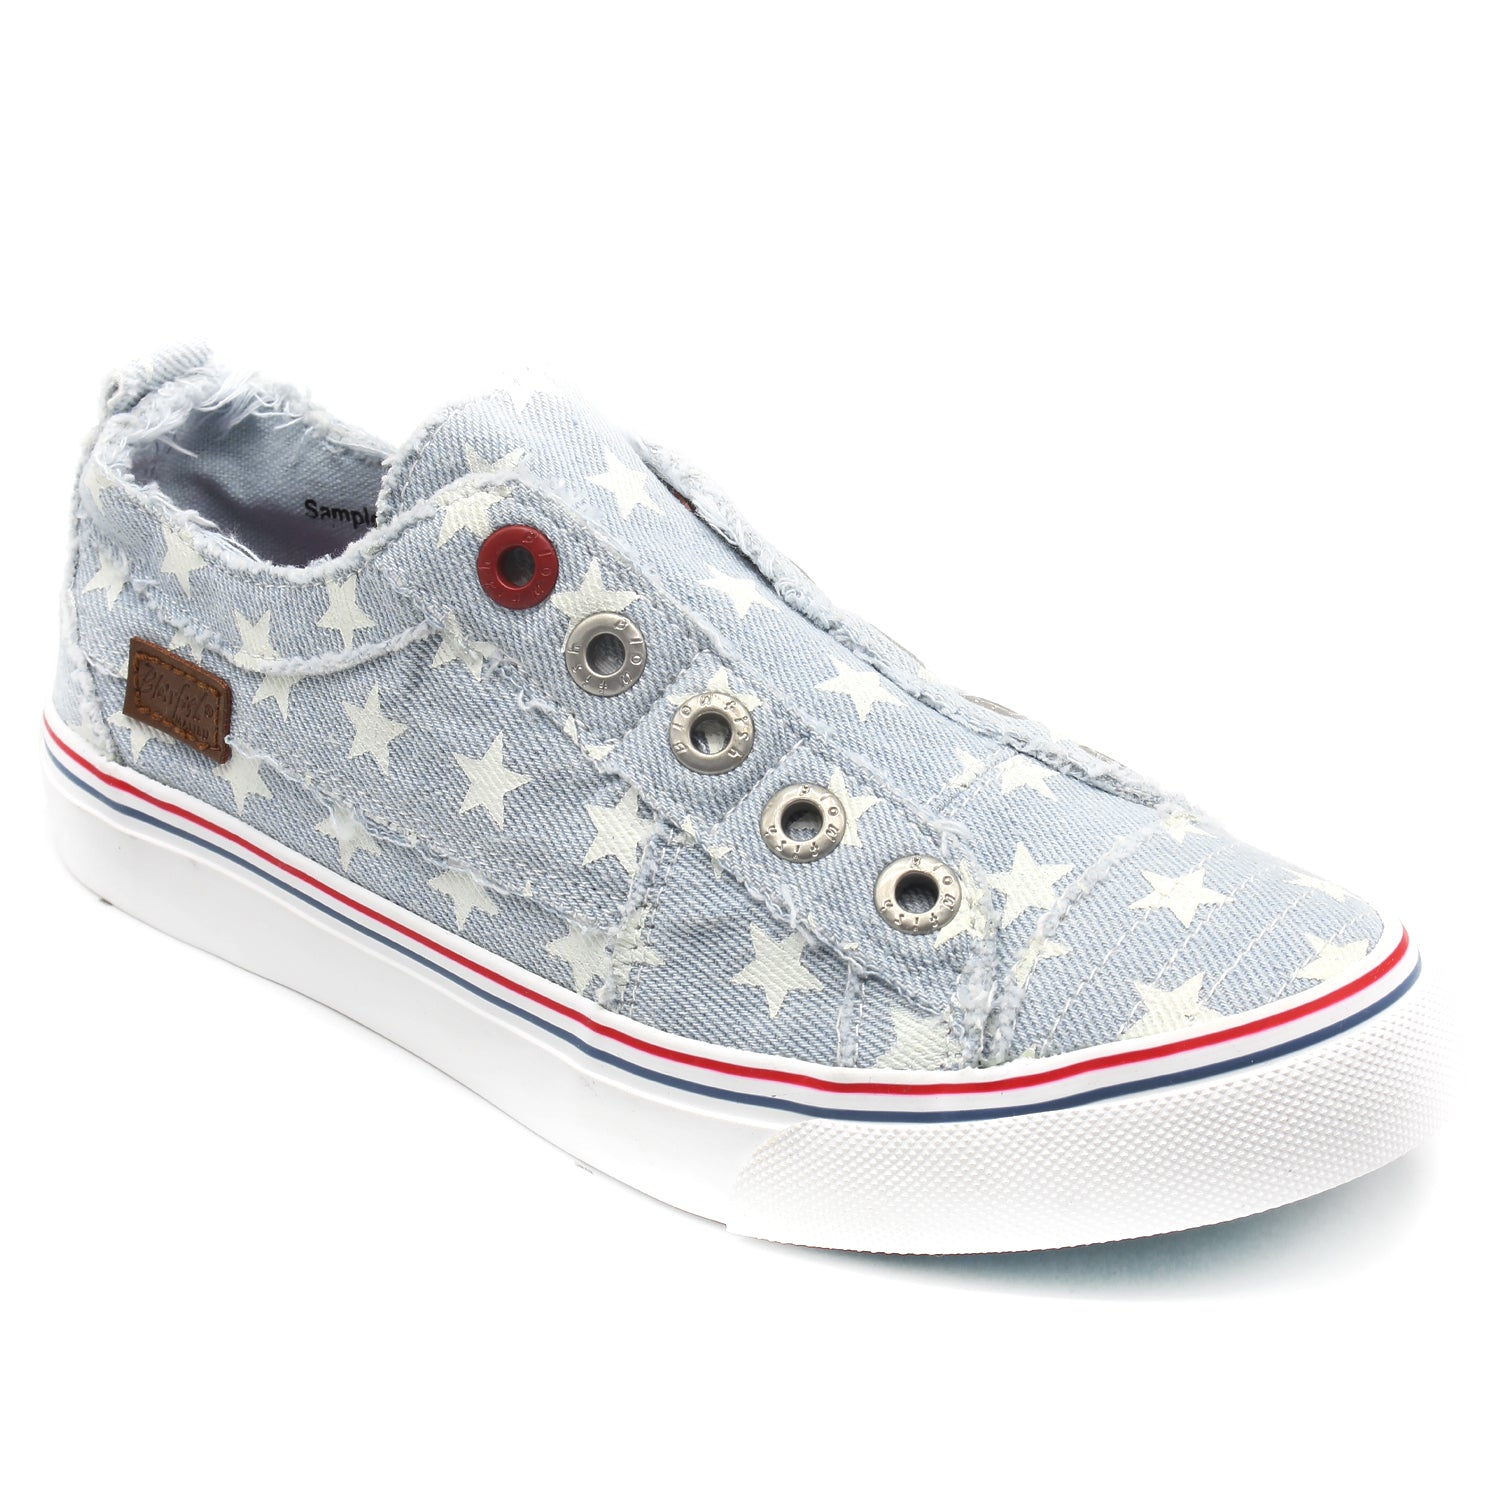 'Blowfish' Malibu Play ZS-0061 970 - Slip-on Shoe - Ice Denim Star Print